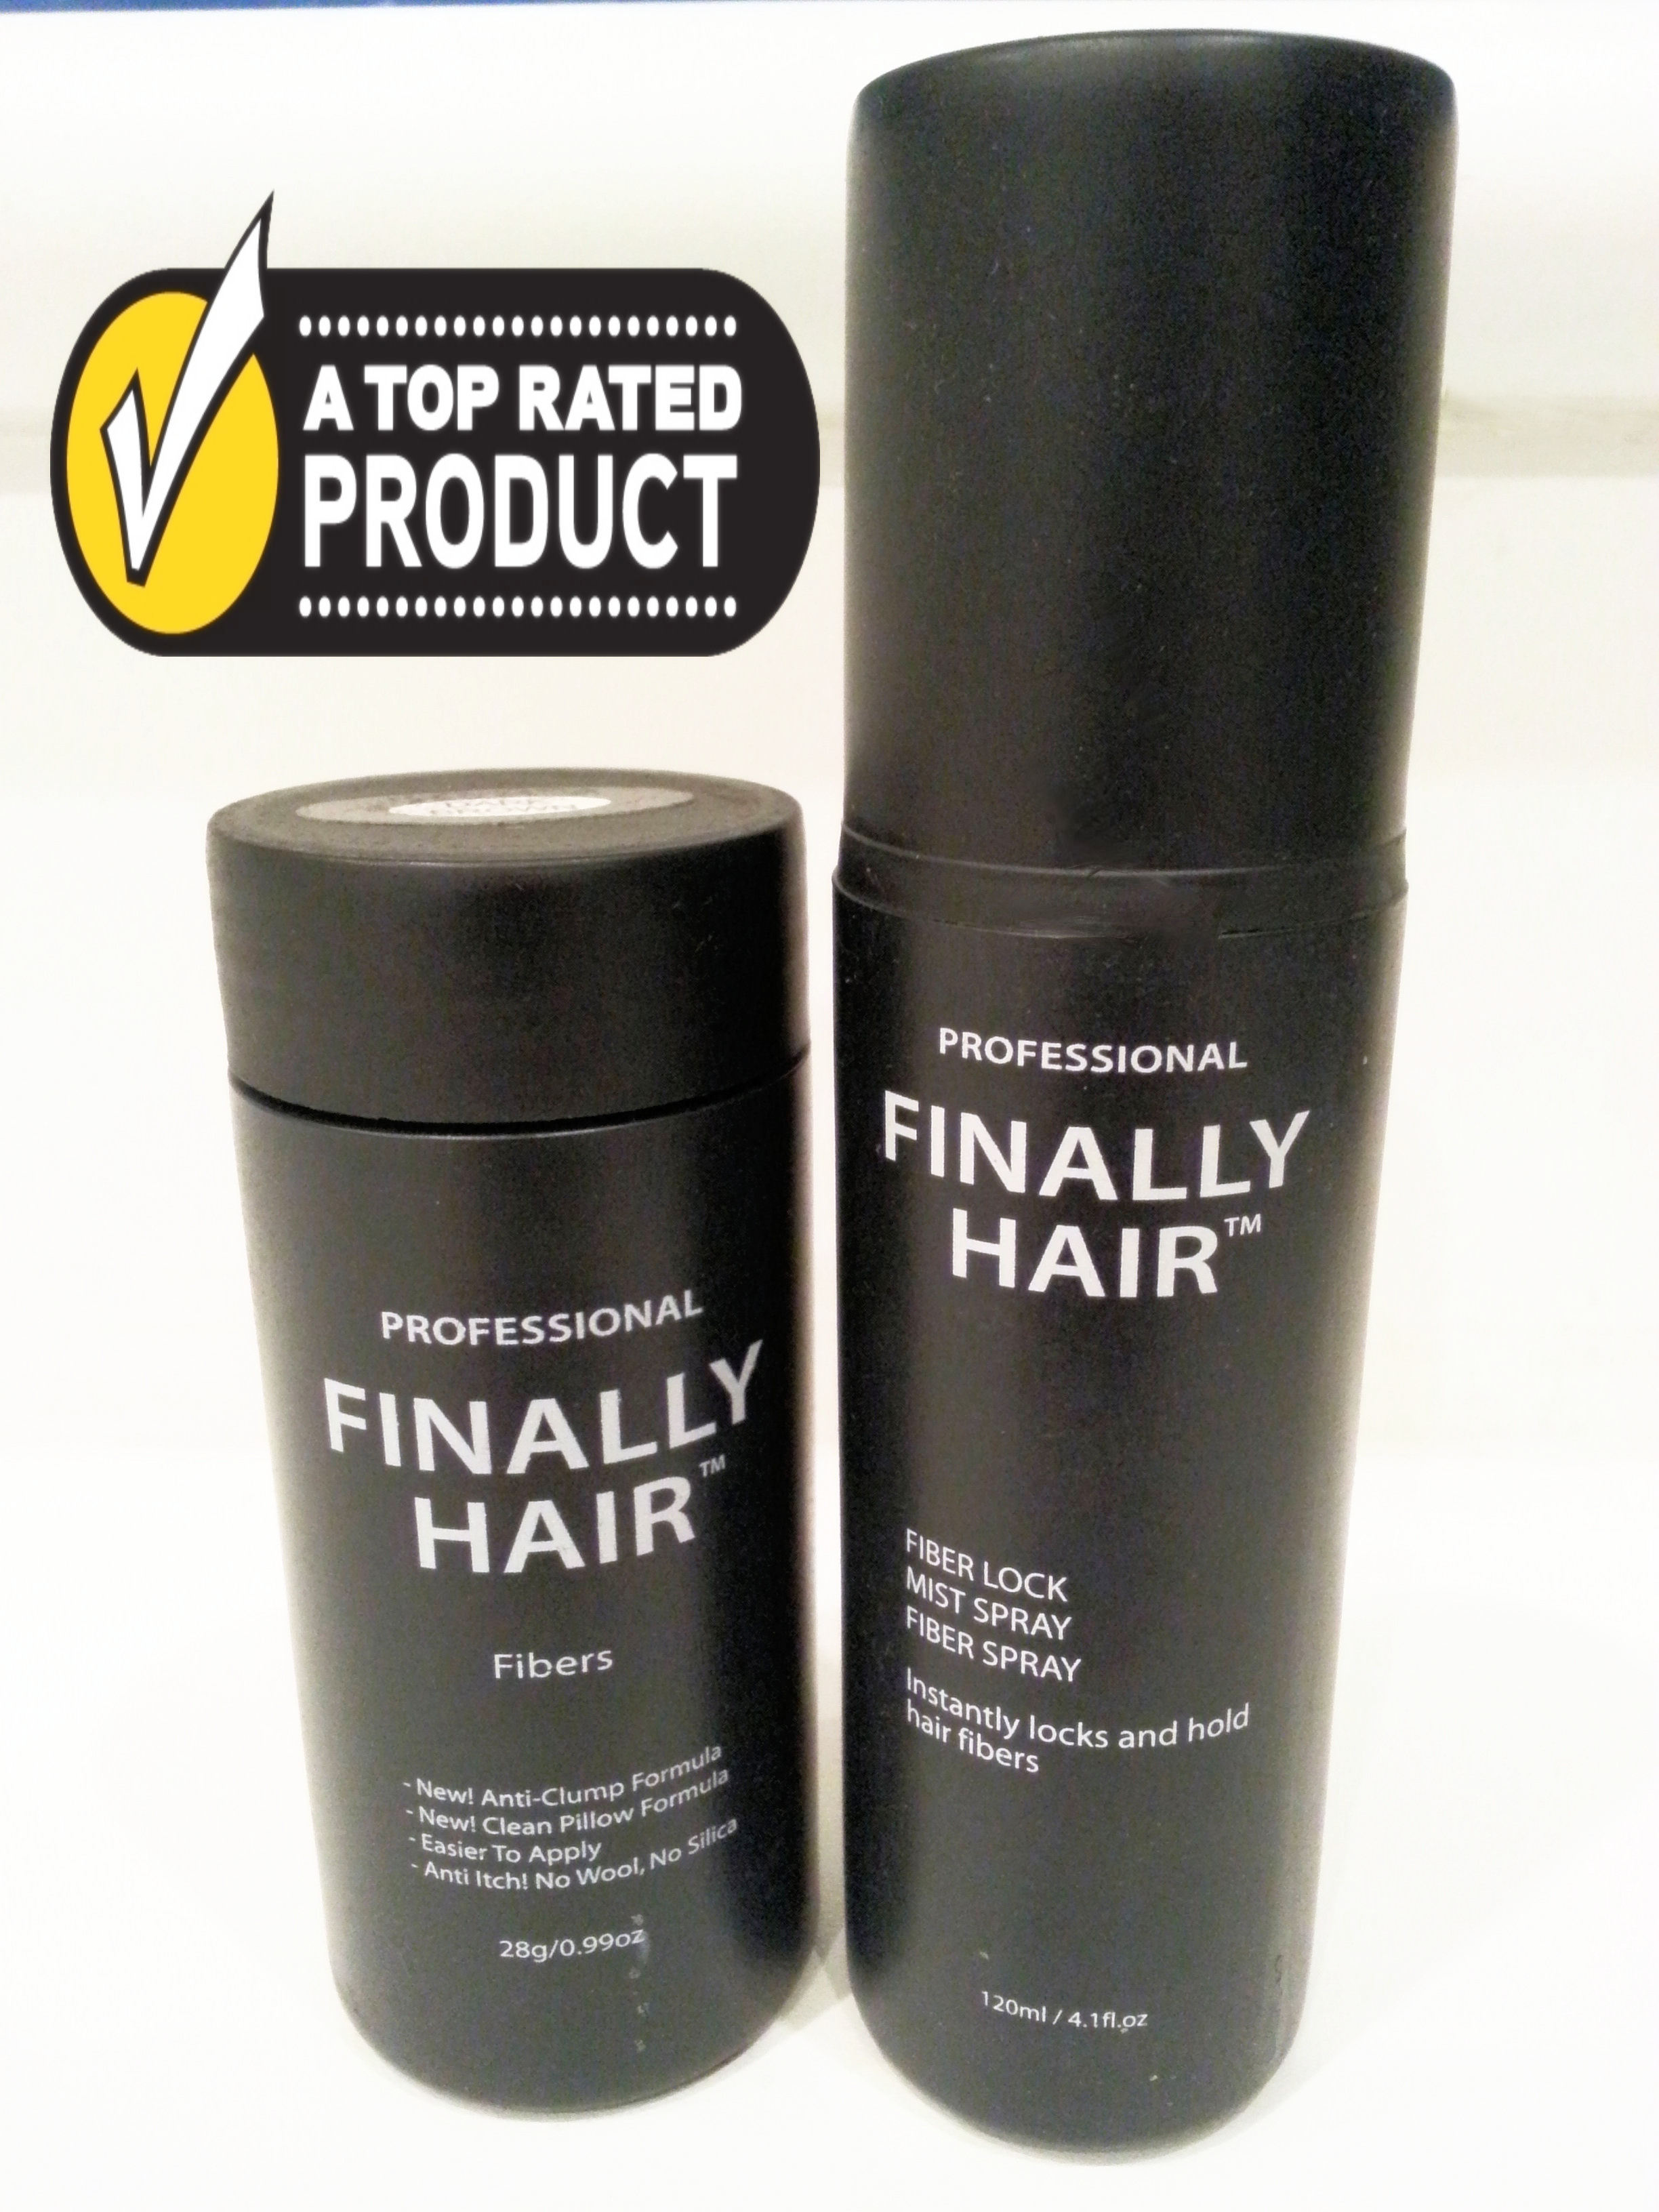 Finally Hair Corporation On Walmart Marketplace